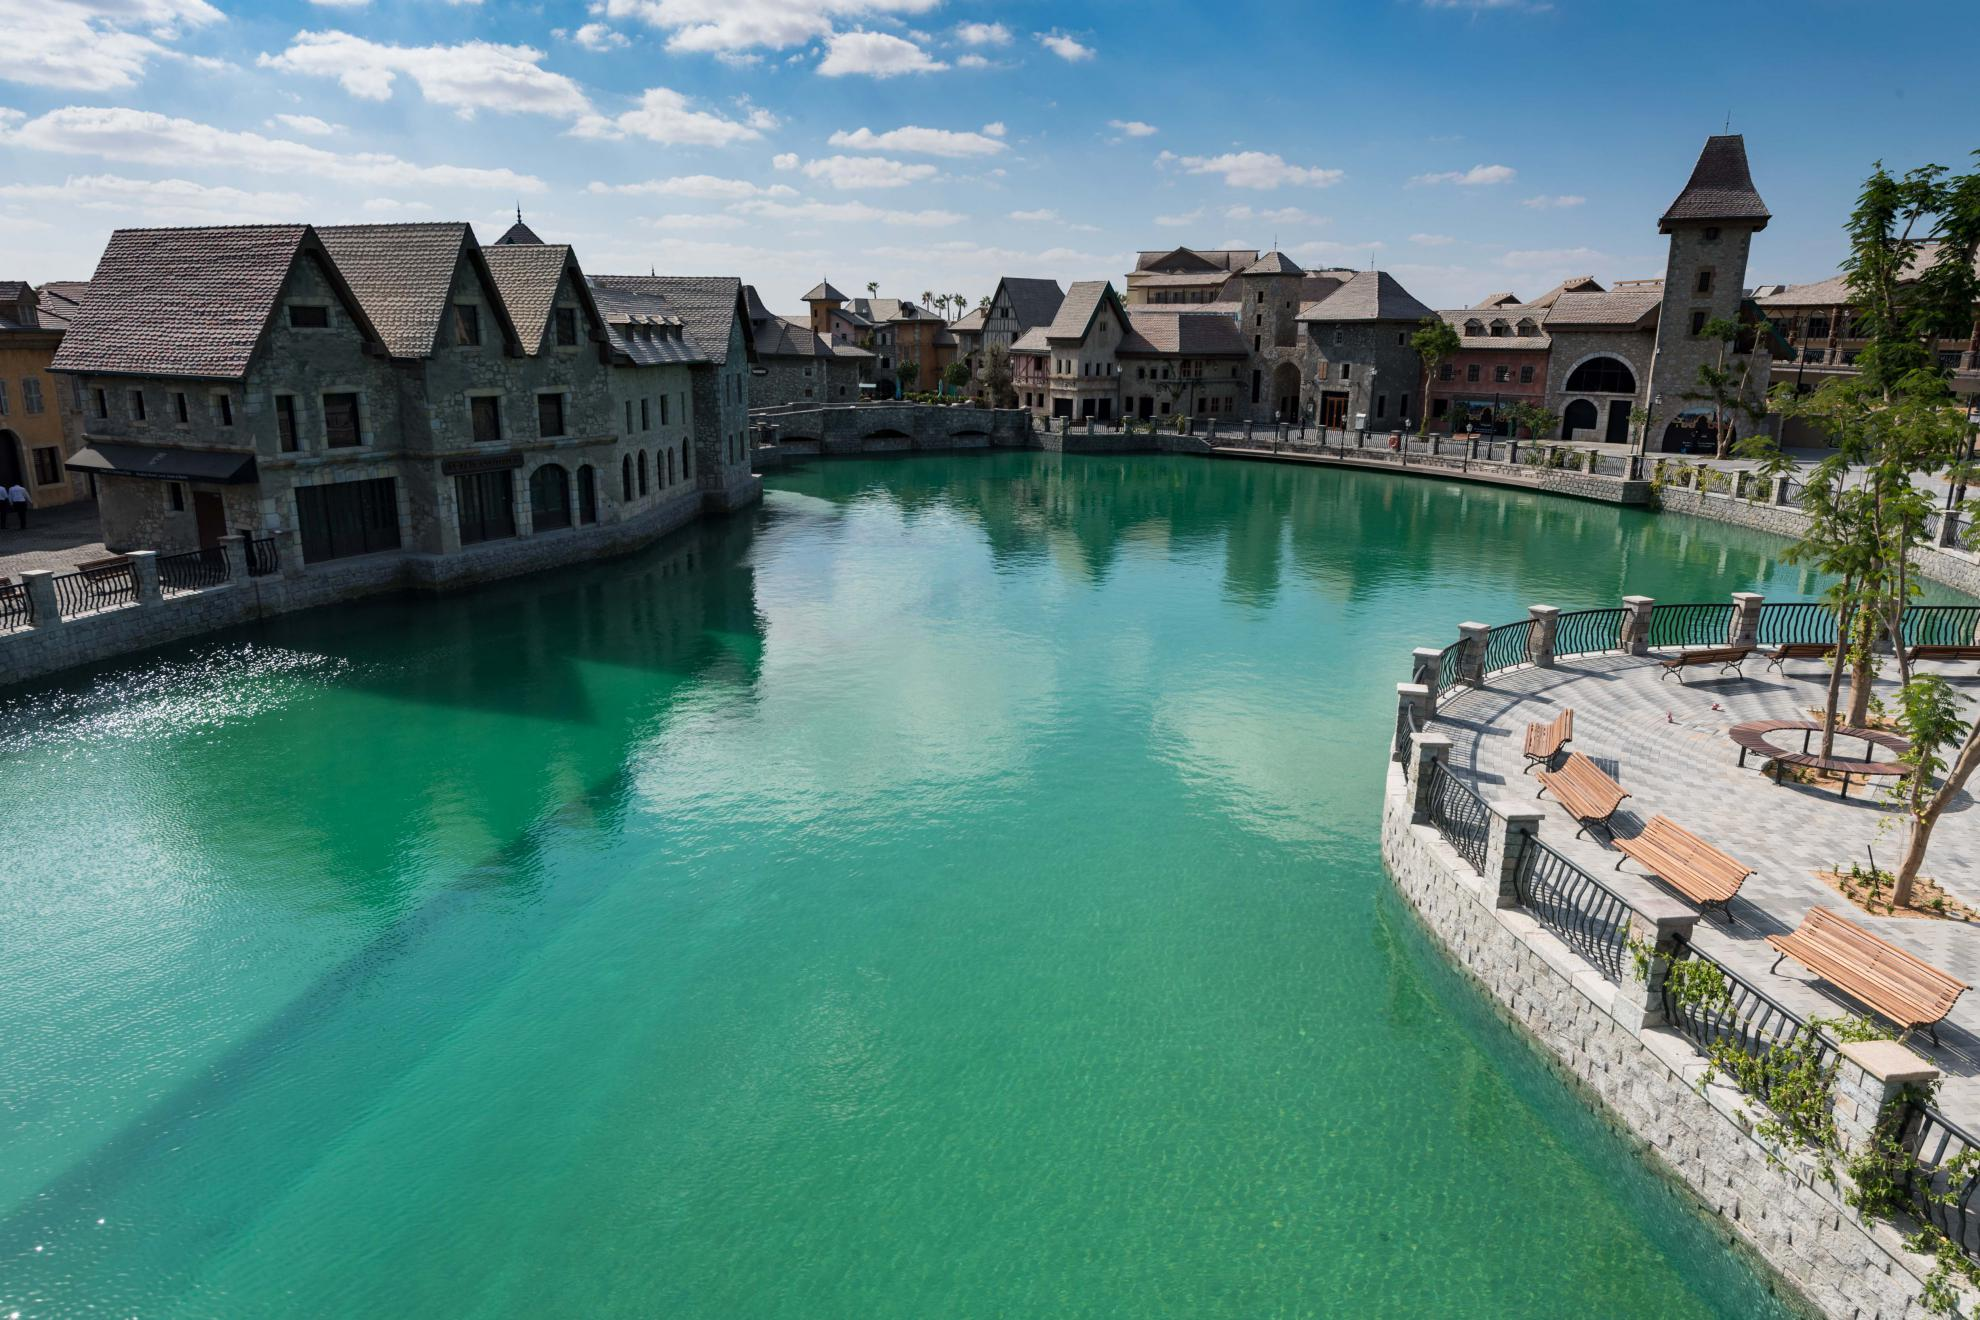 Riverland™ Dubai announces a thrilling lineup of signature events for 2017